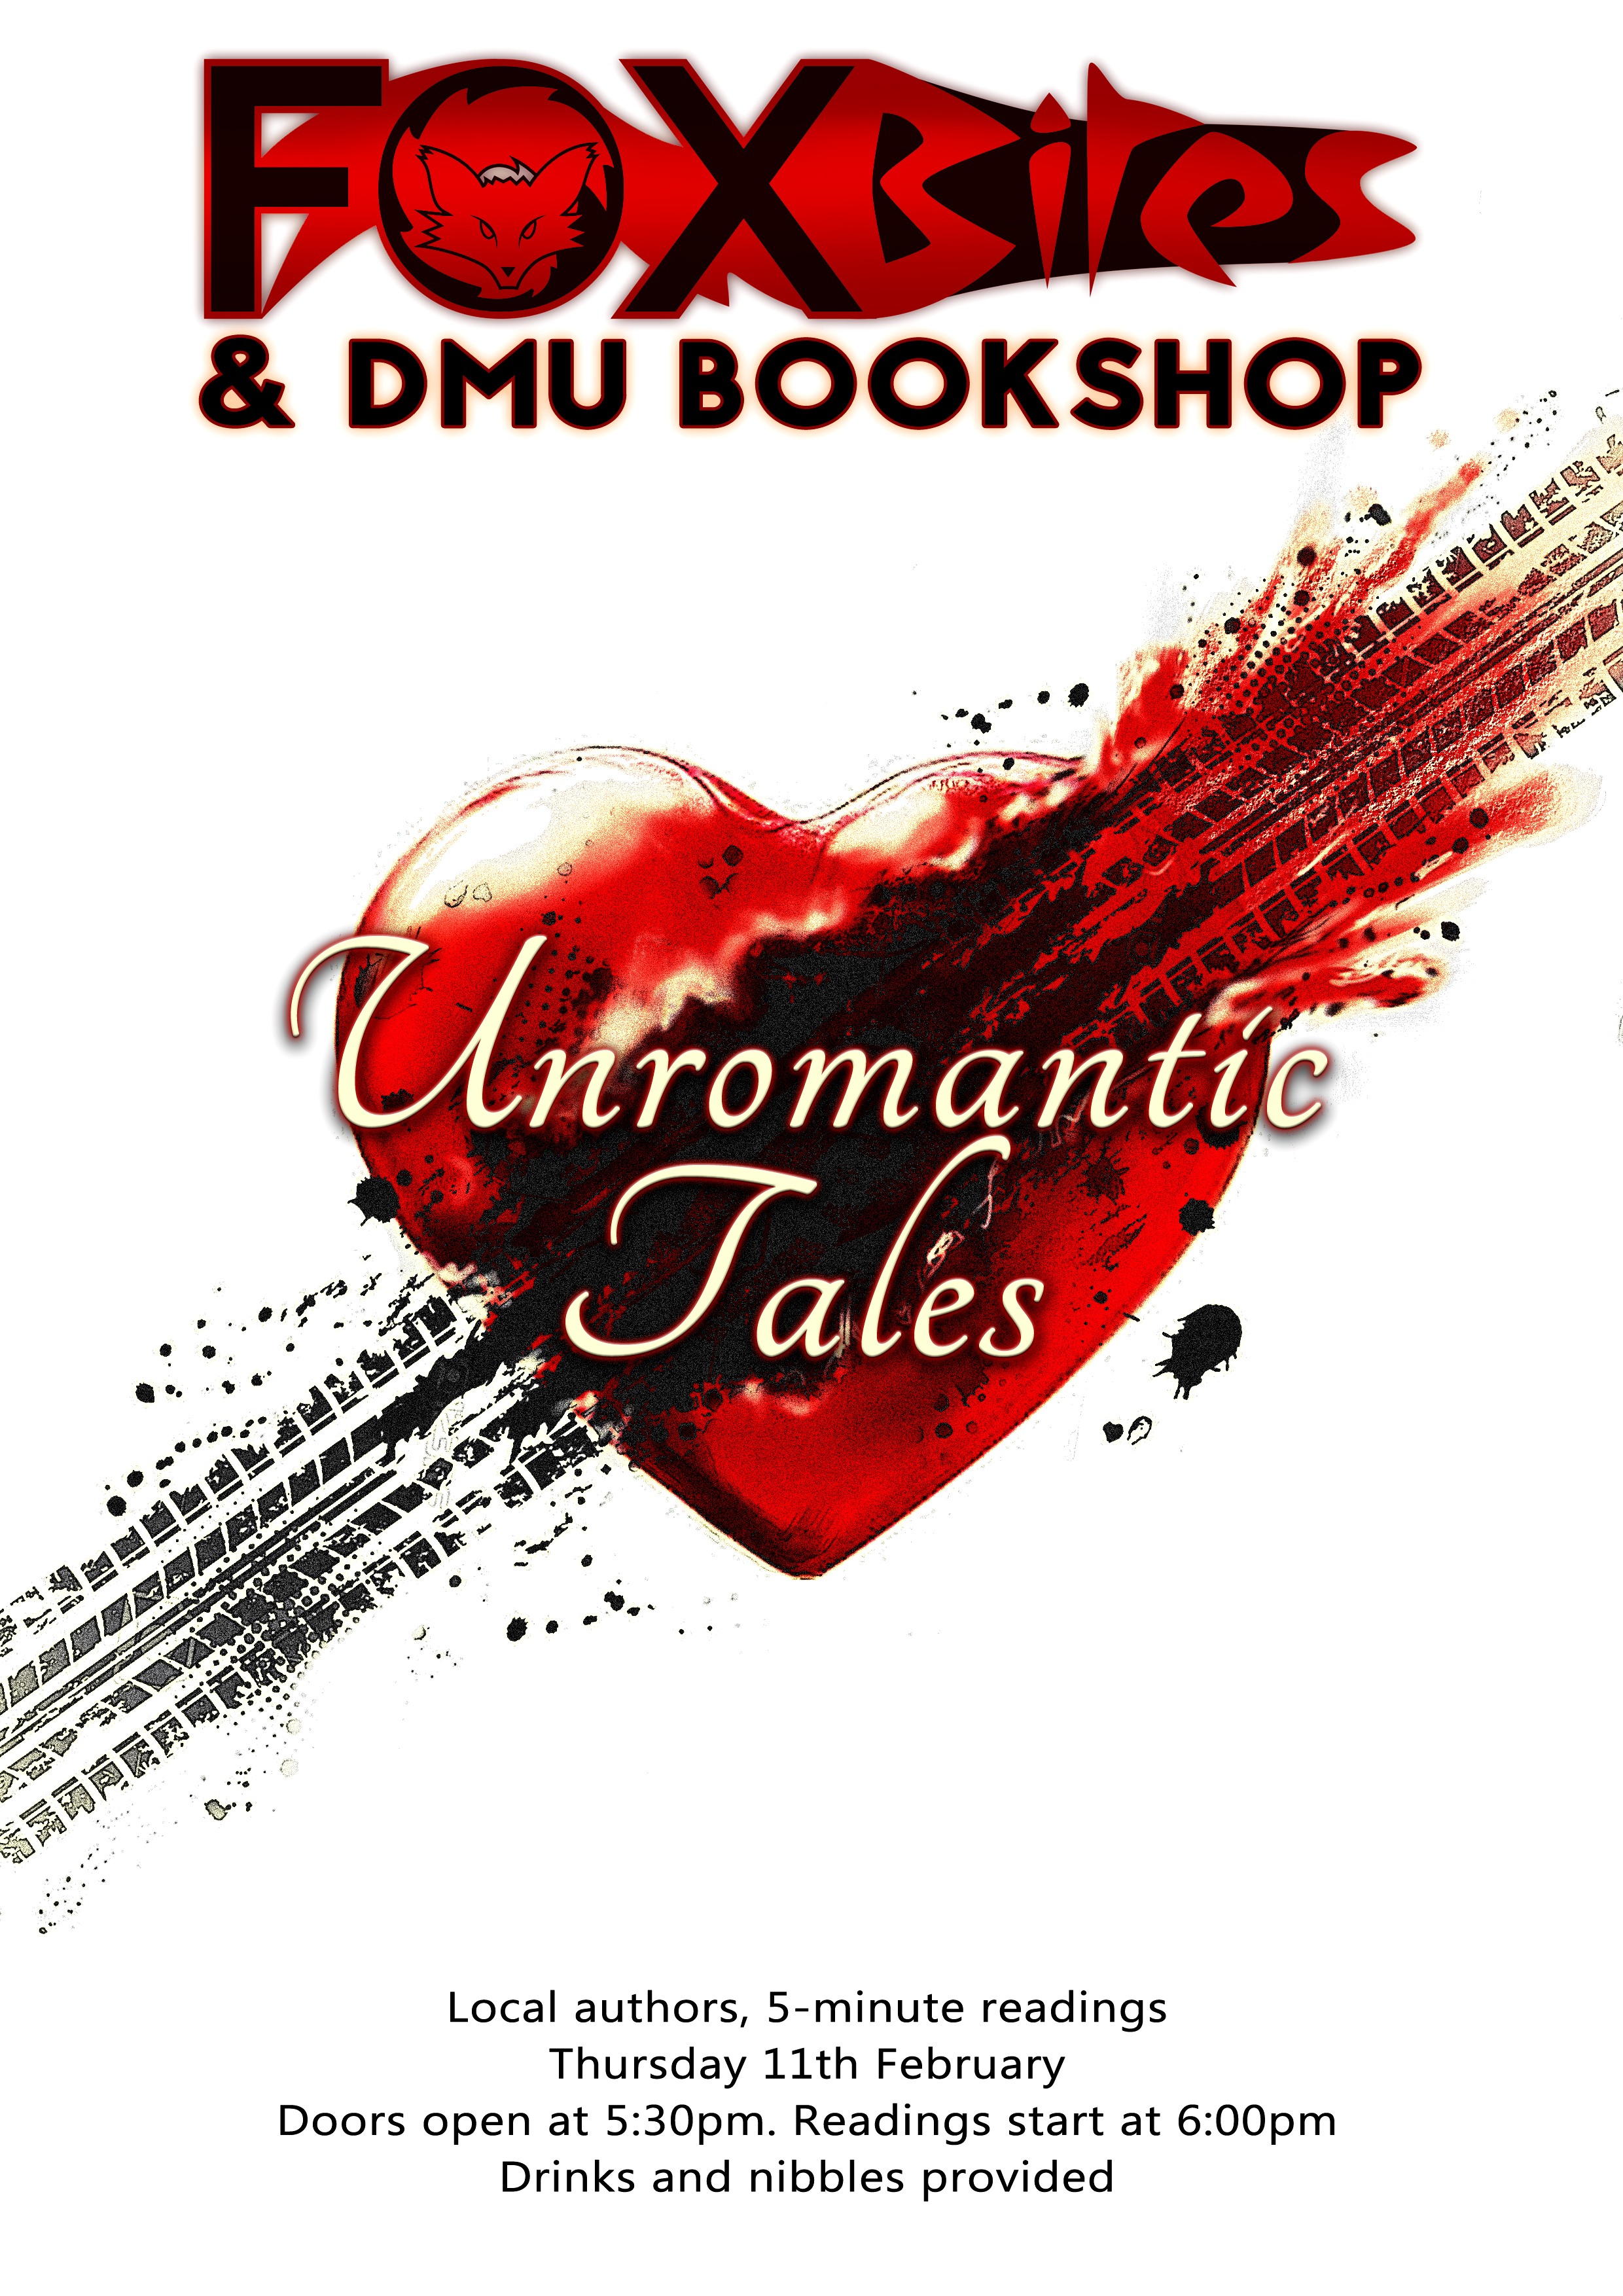 unromantic tales poster